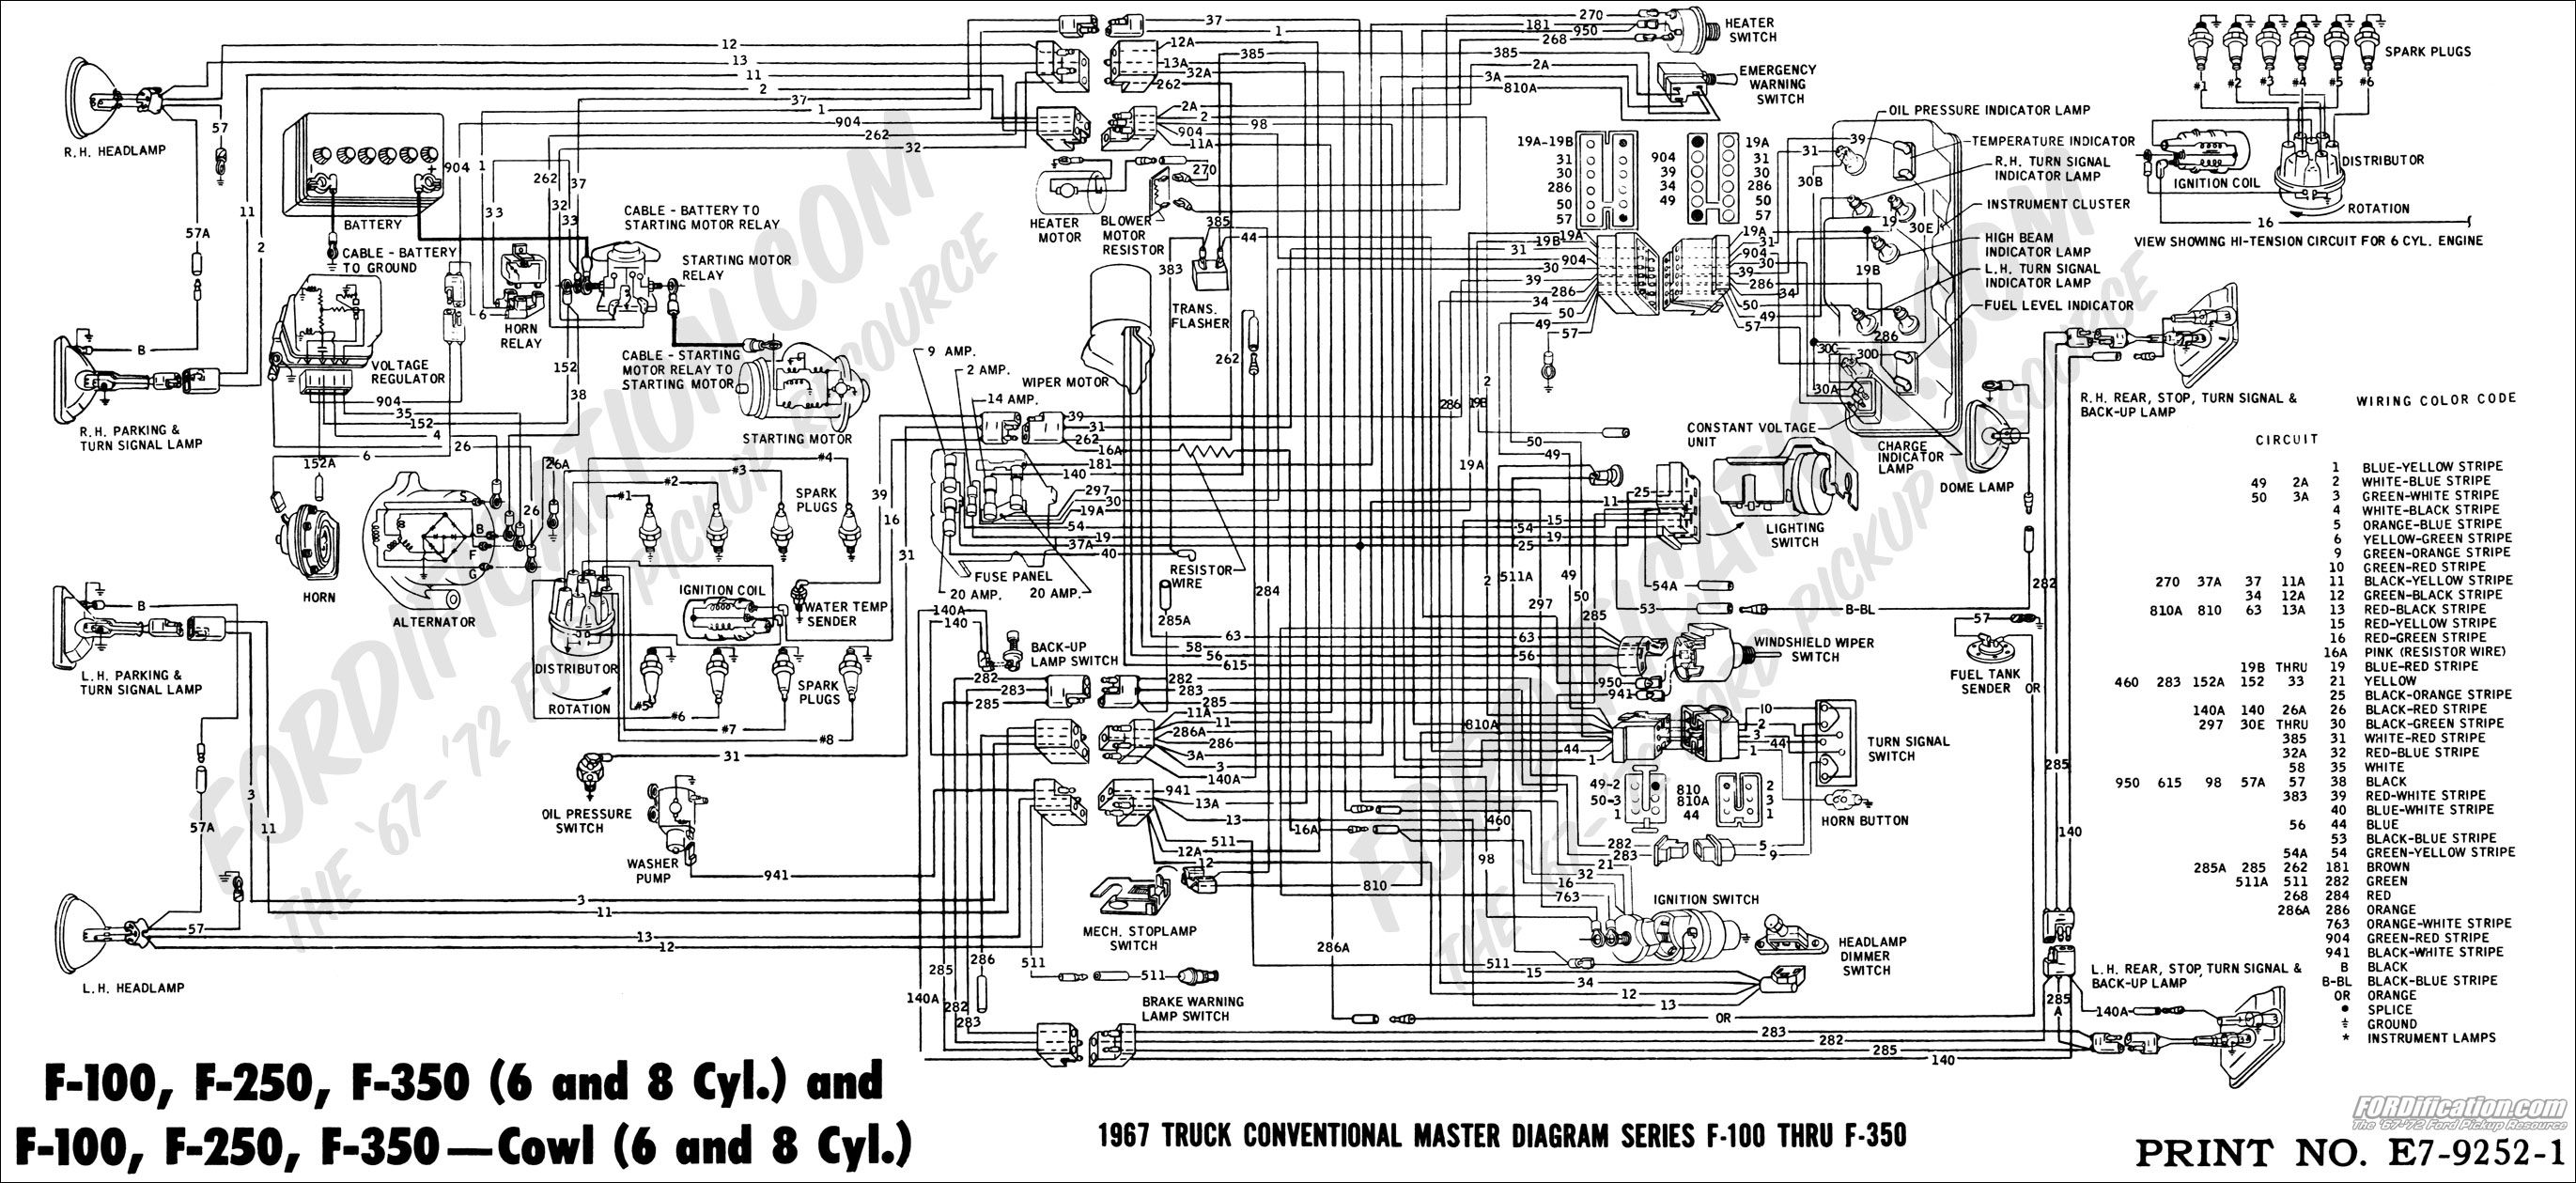 8e608320d8e6c71ff5bbdb2efdd7ada1 ford truck technical drawings and schematics section h wiring Ford Wiring Harness Diagrams at soozxer.org